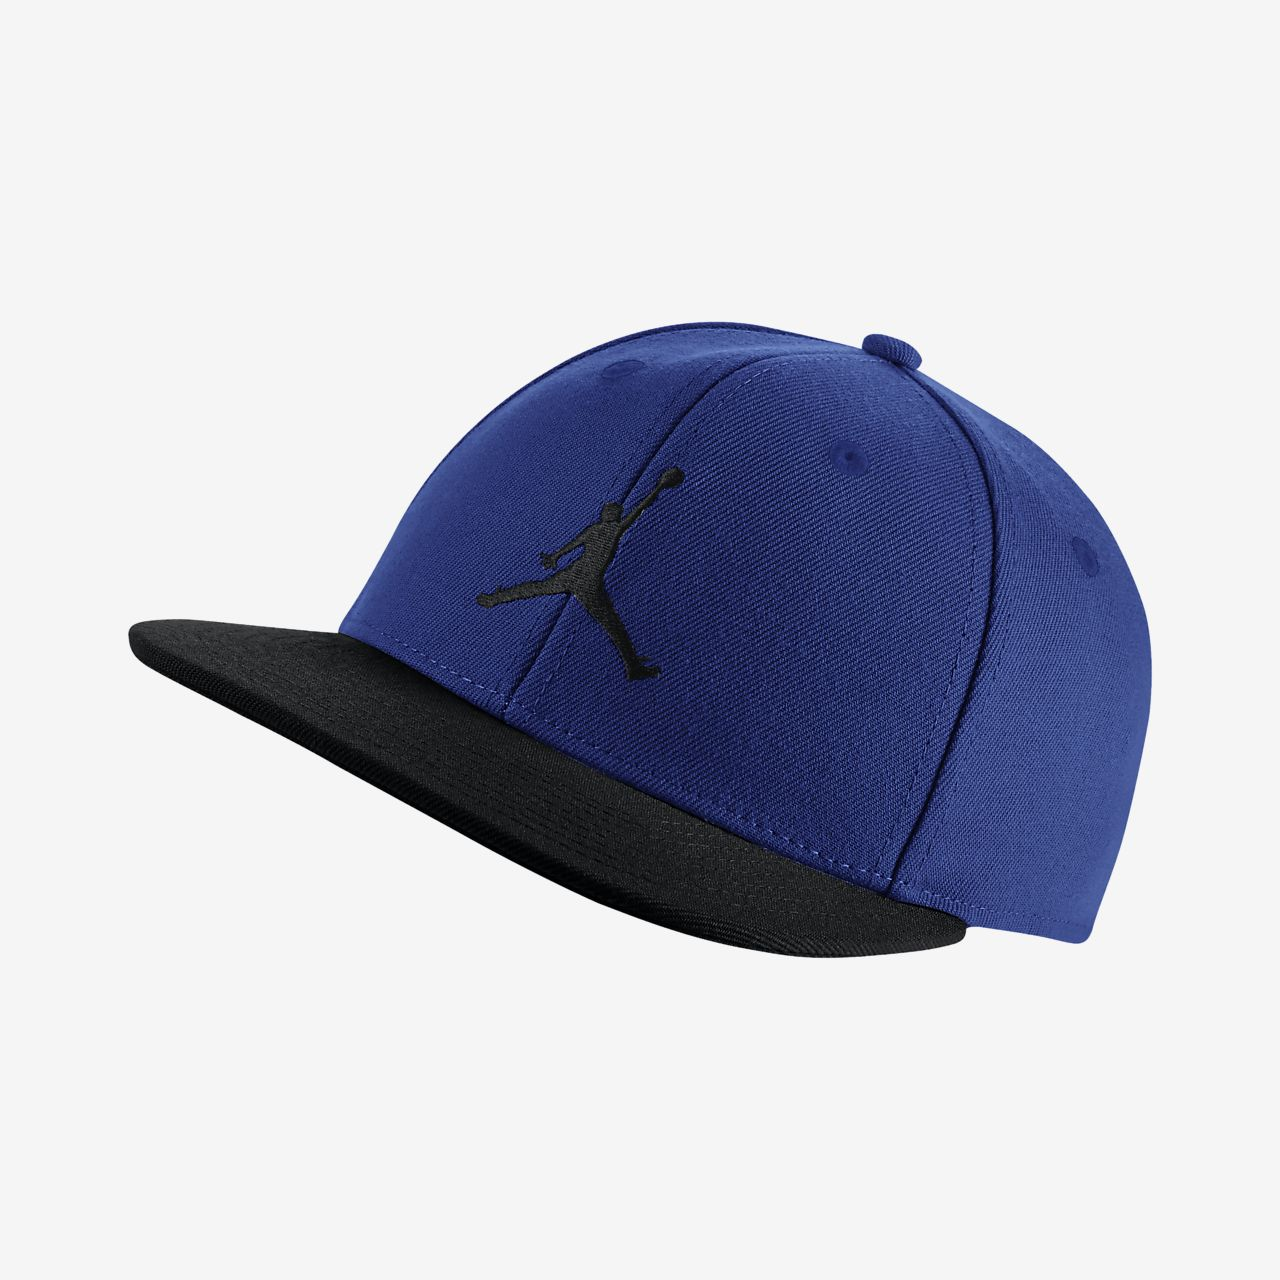 5f57924d7a42 ... best price jordan jumpman kids adjustable hat fa5cc e0e0e